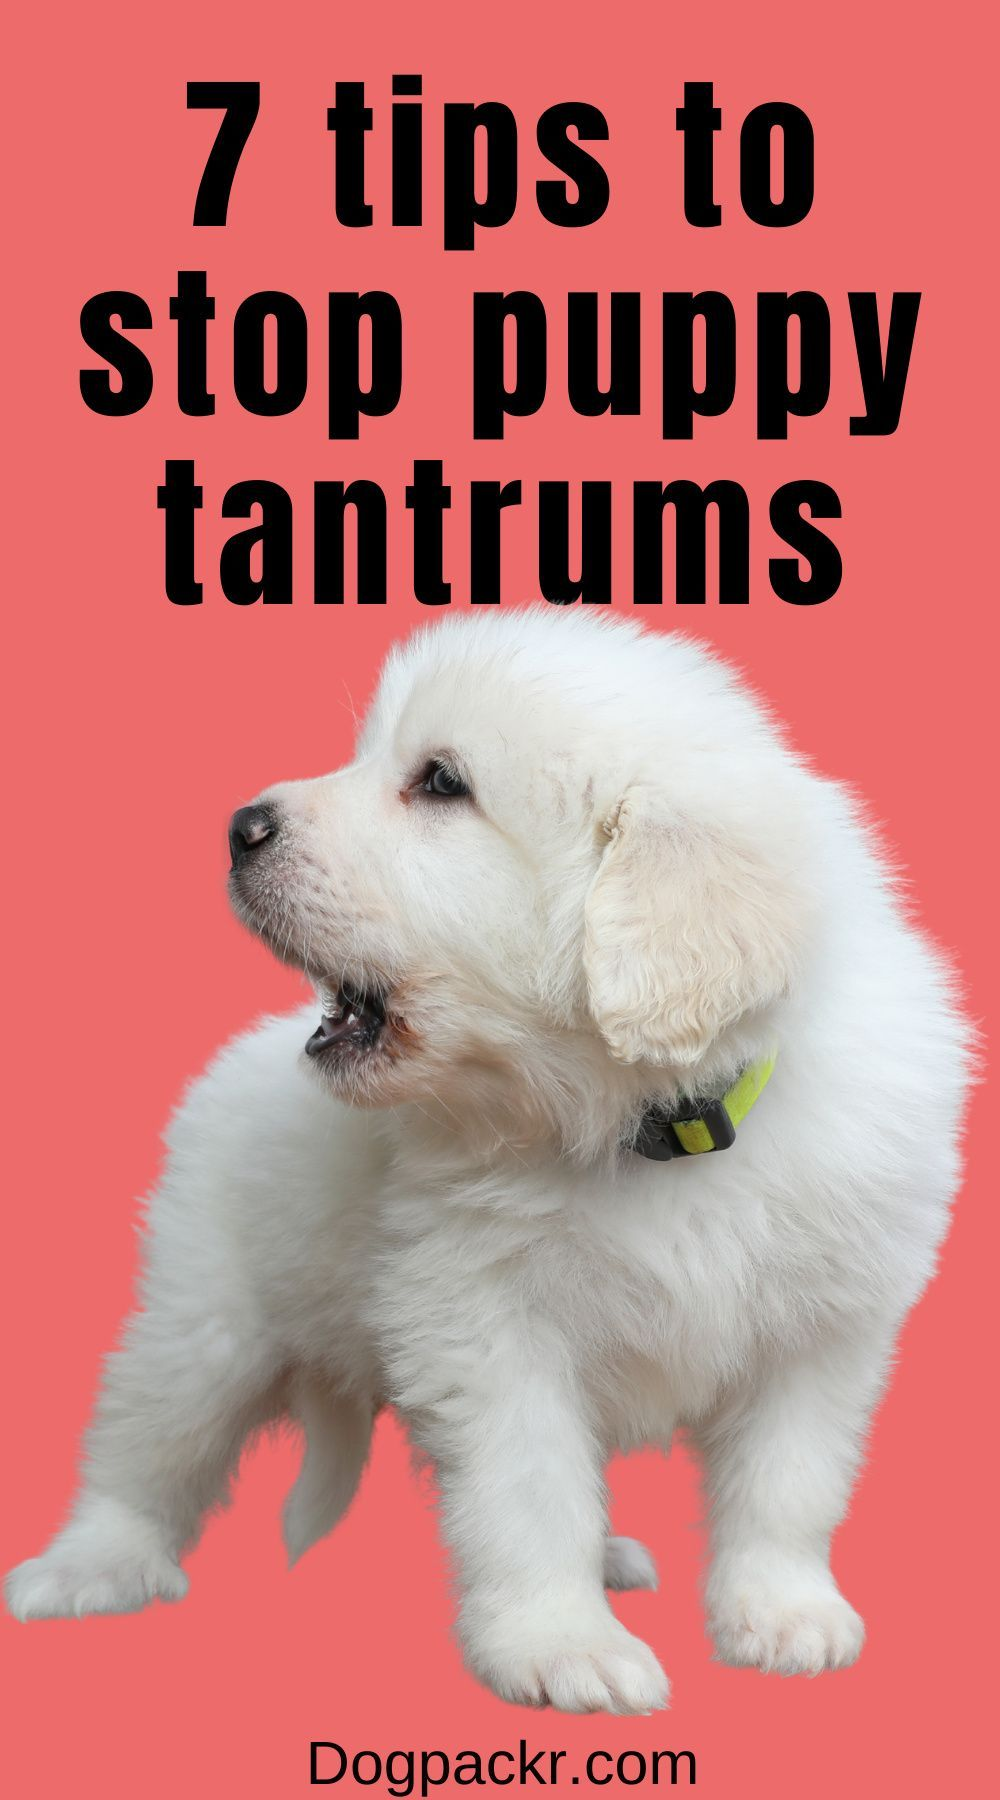 How To Deal With Puppy Tantrums 7 Tips To Stop Them Dogpackr In 2021 Puppies Hyper Dog Tantrums